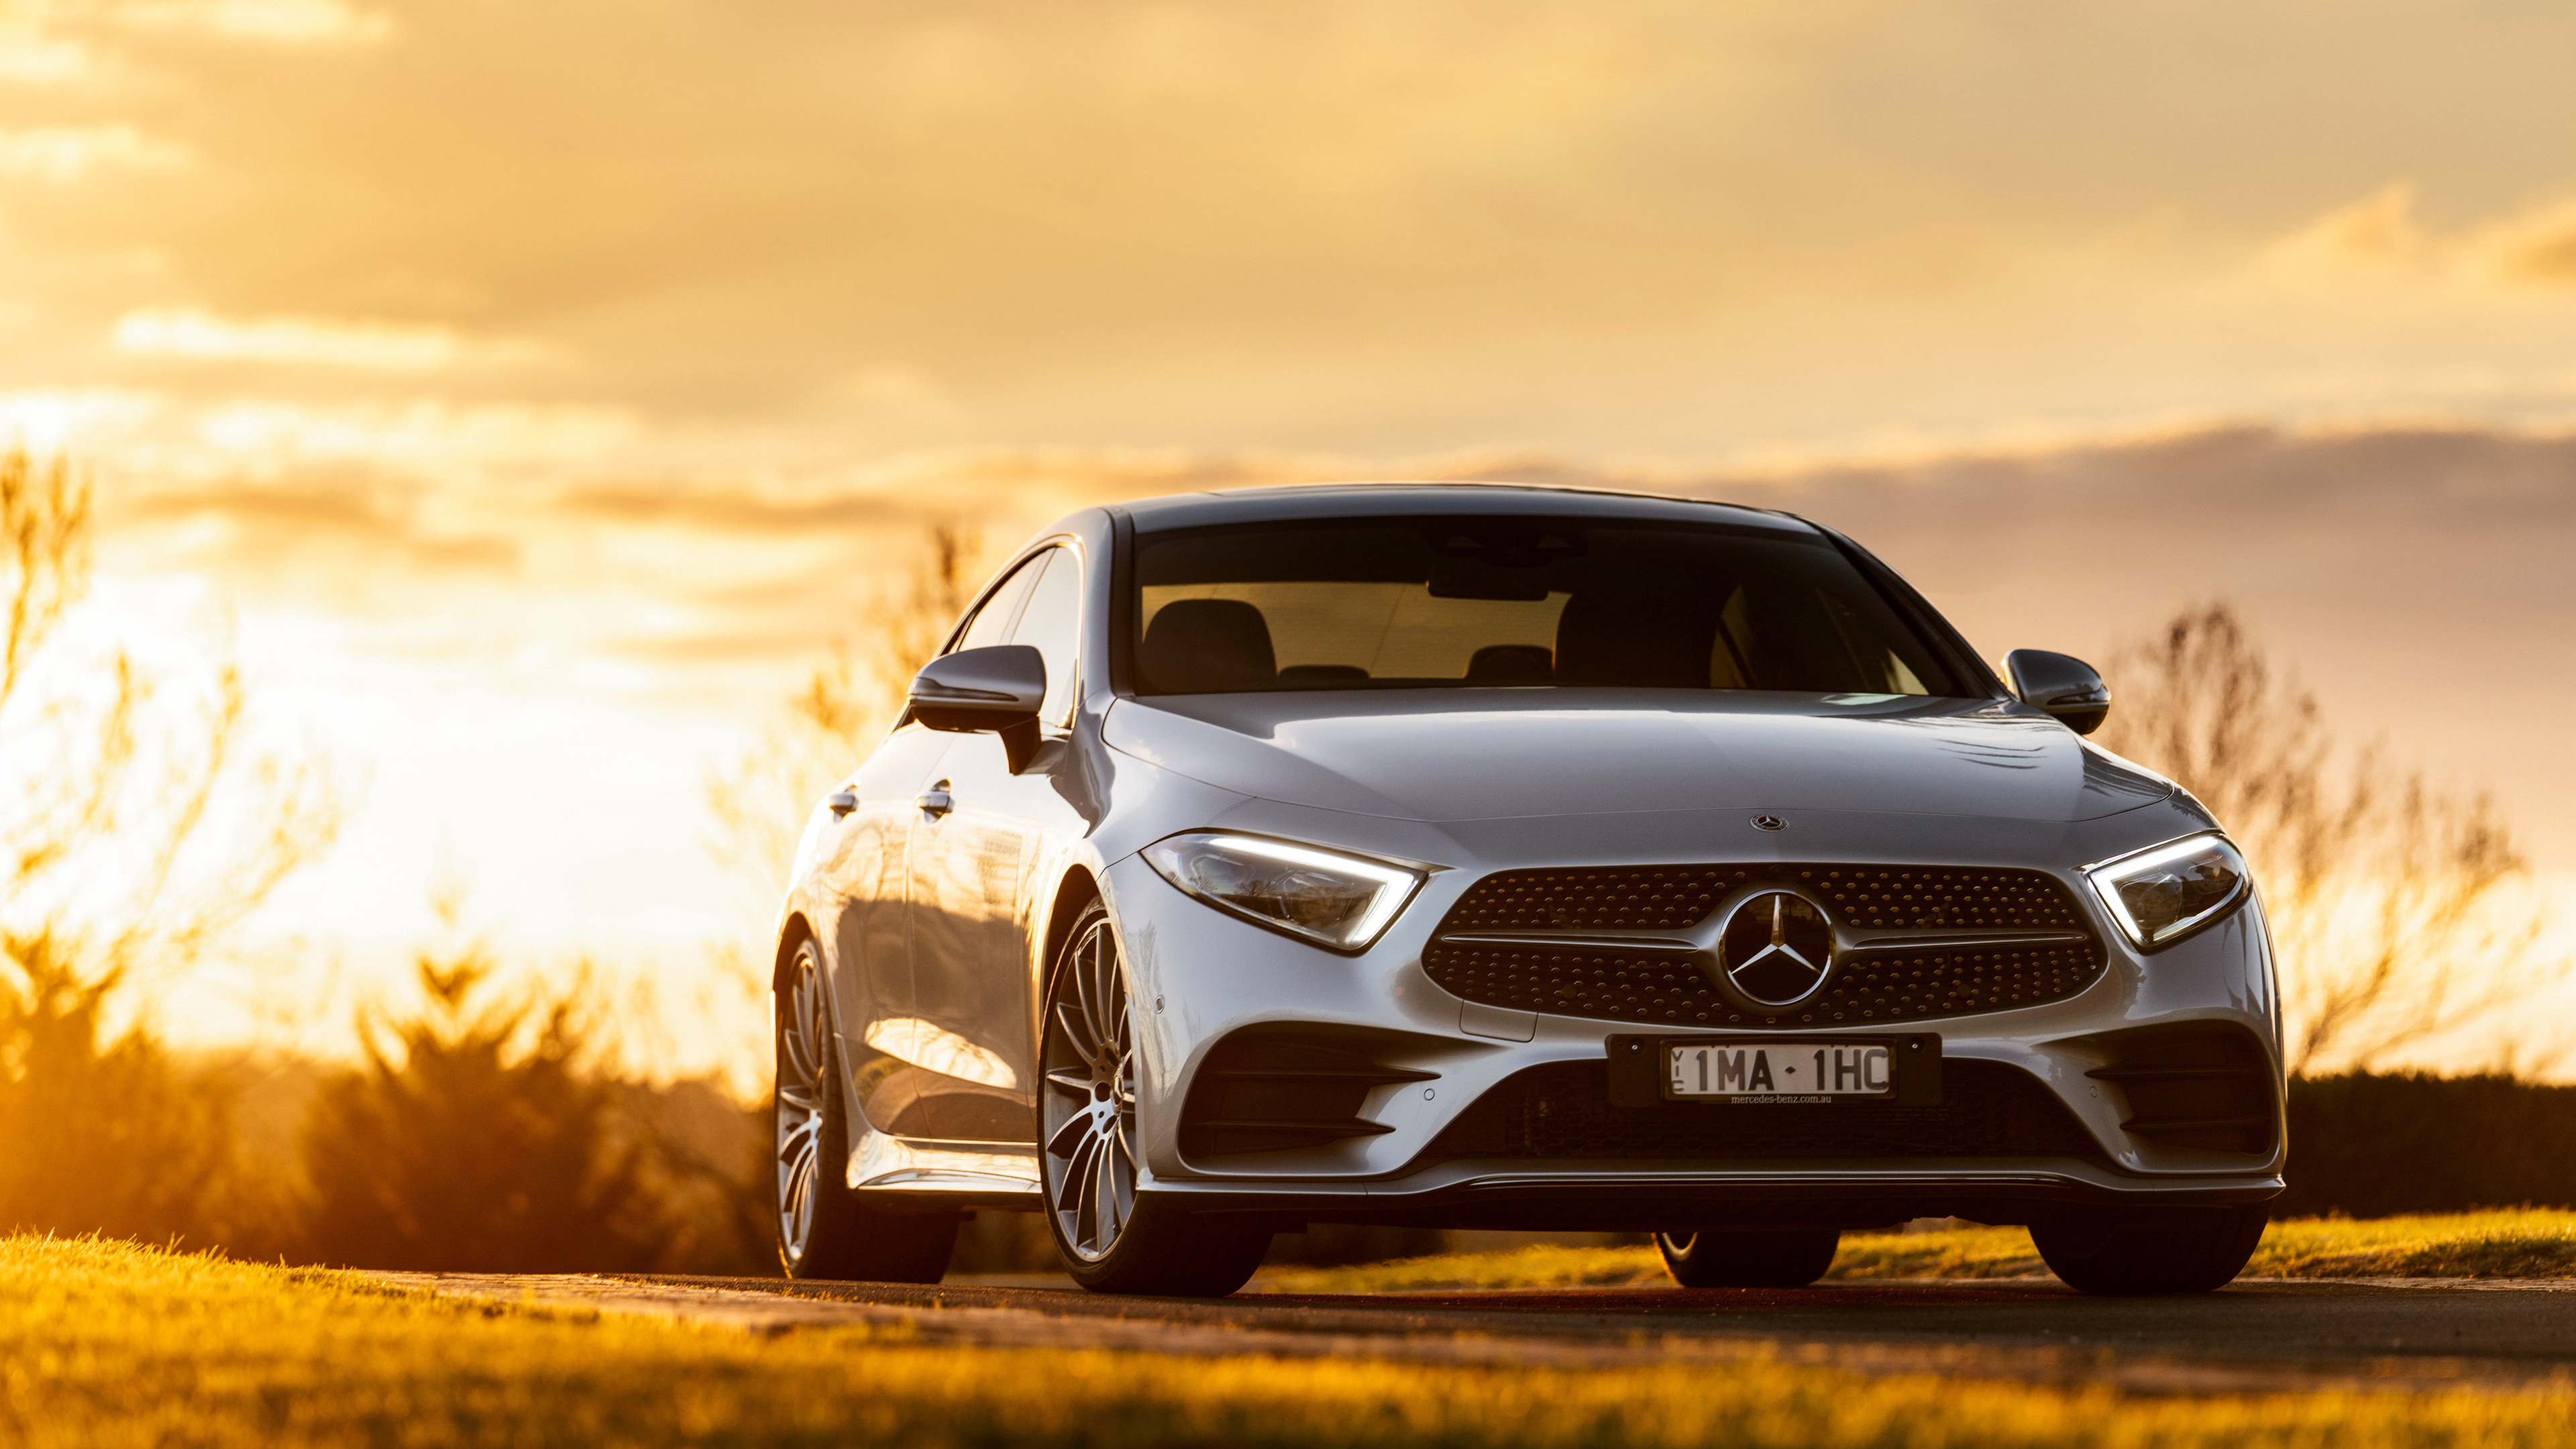 mercedes benz cls 450 4matic amg line 2018 front 1539113595 - Mercedes Benz CLS 450 4MATIC AMG Line 2018 Front - mercedes wallpapers, mercedes amg wallpapers, hd-wallpapers, cars wallpapers, 4k-wallpapers, 2018 cars wallpapers